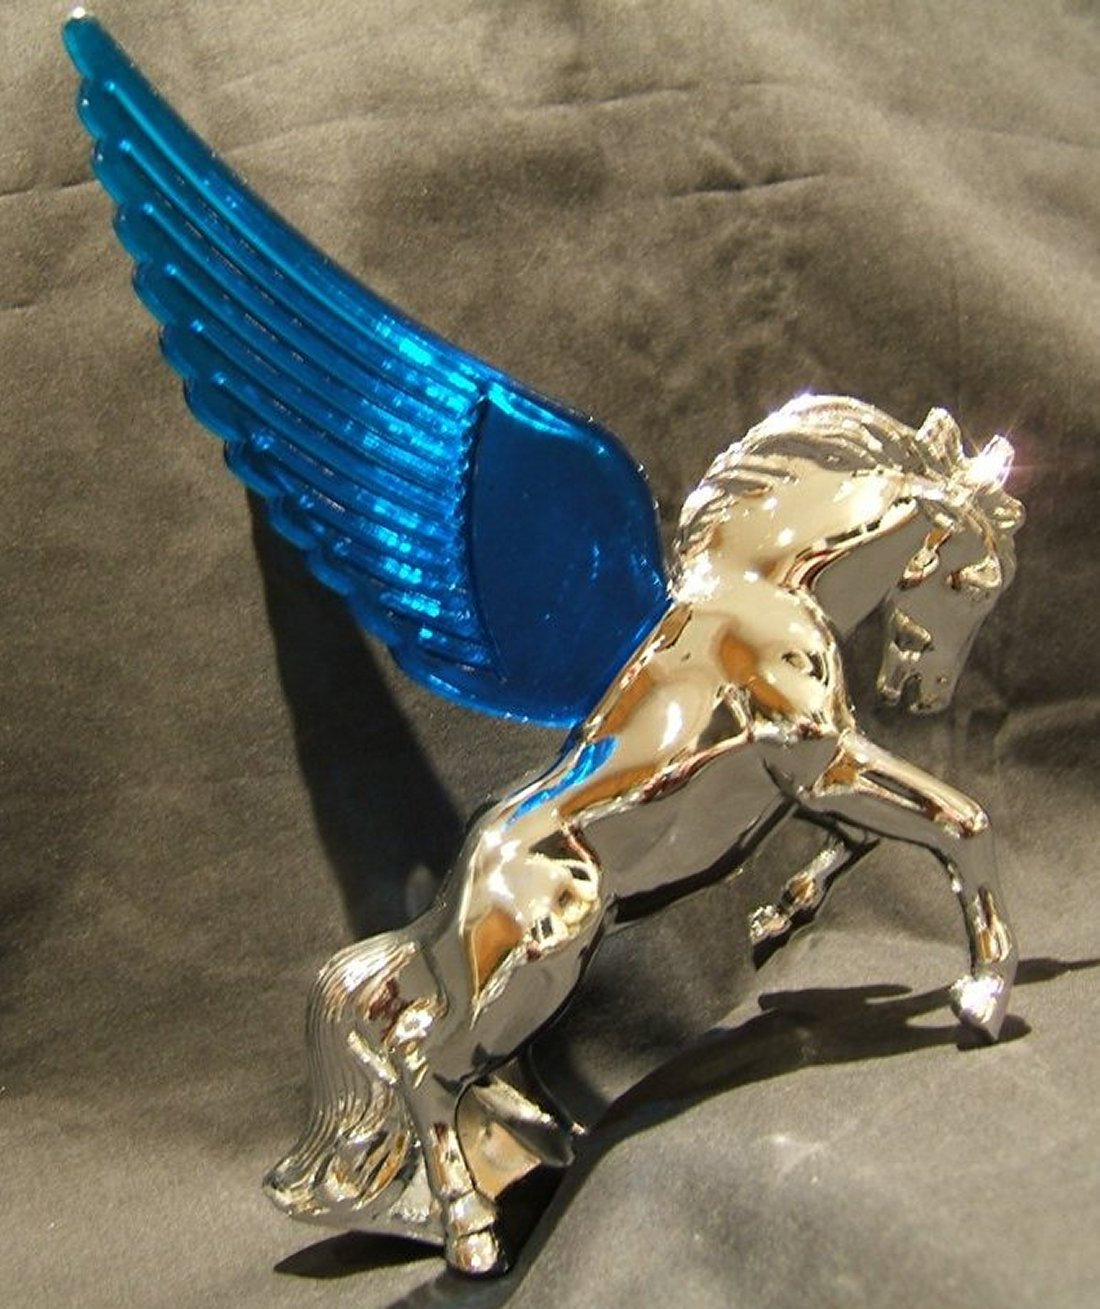 Stallion Mascot with Blue Illuminated Wings-Chrome Plated